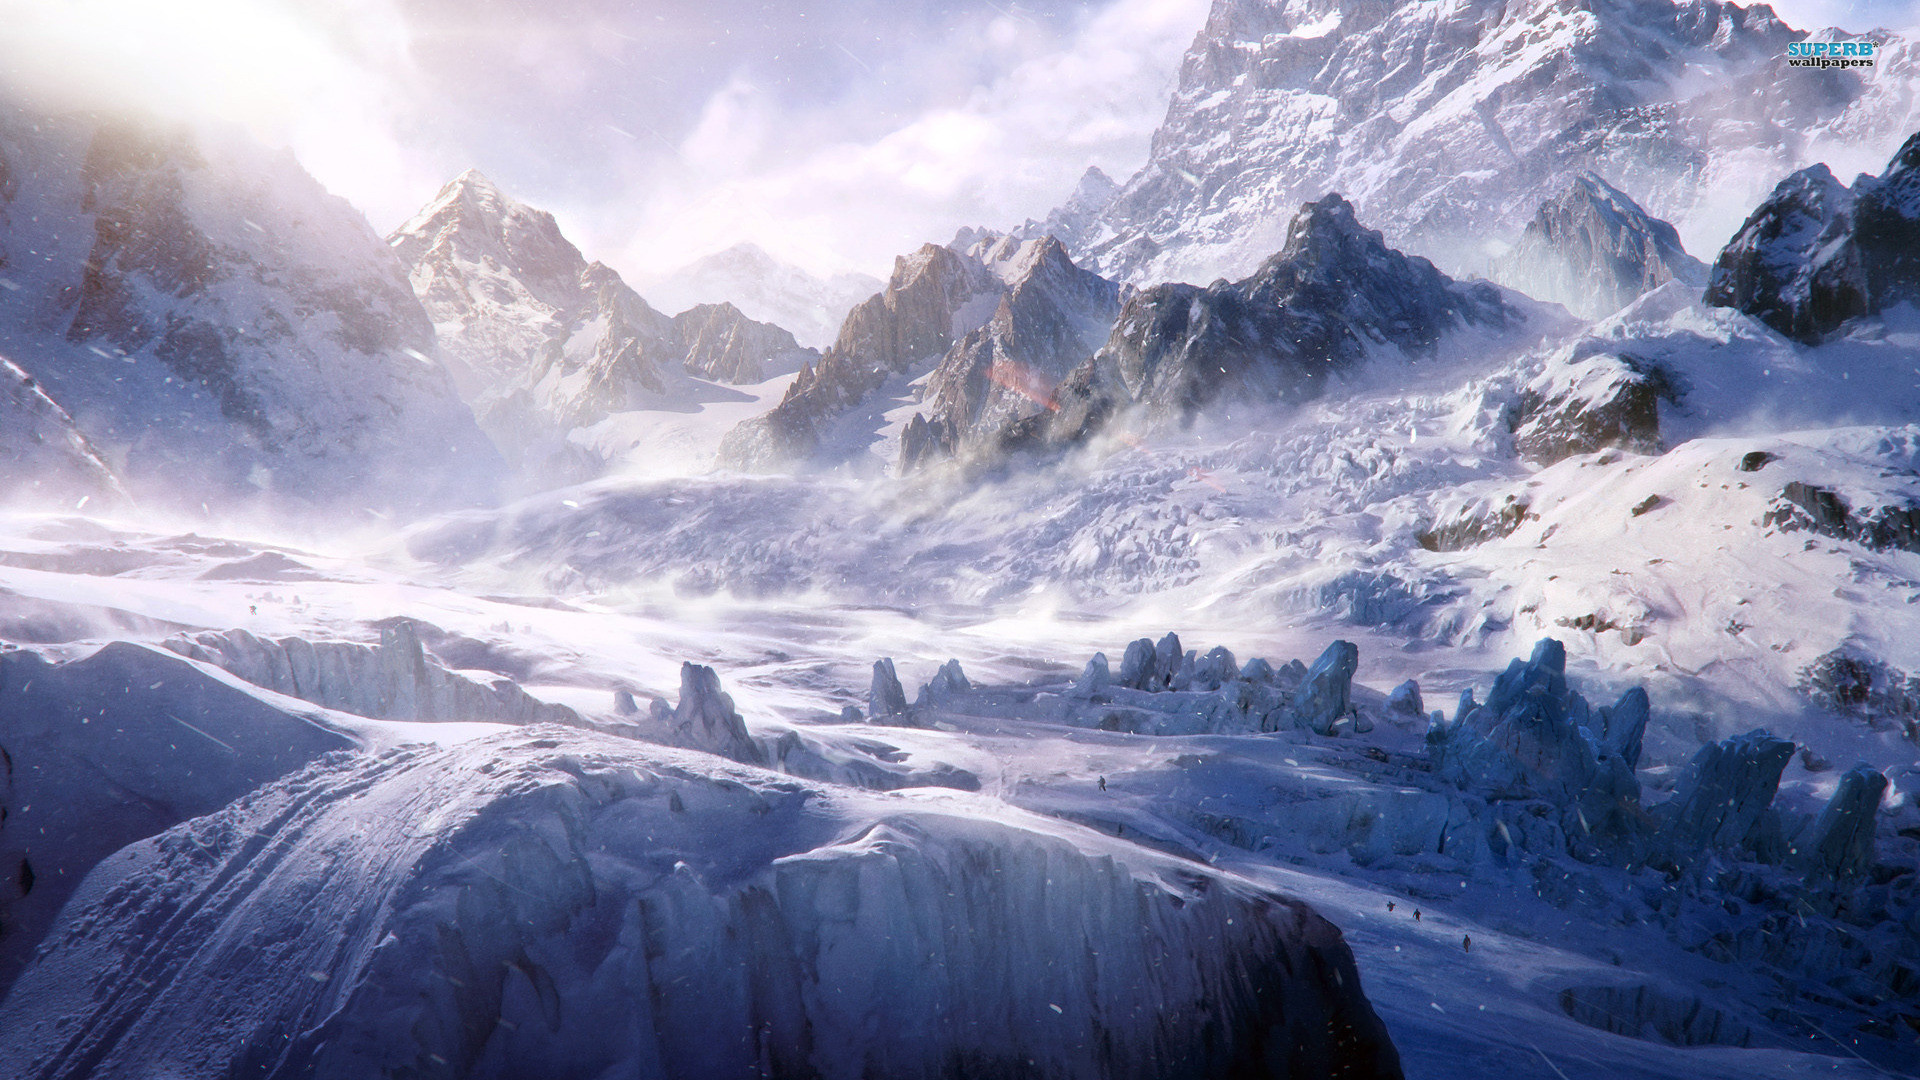 —snowy-mountains-wallpapers-1513